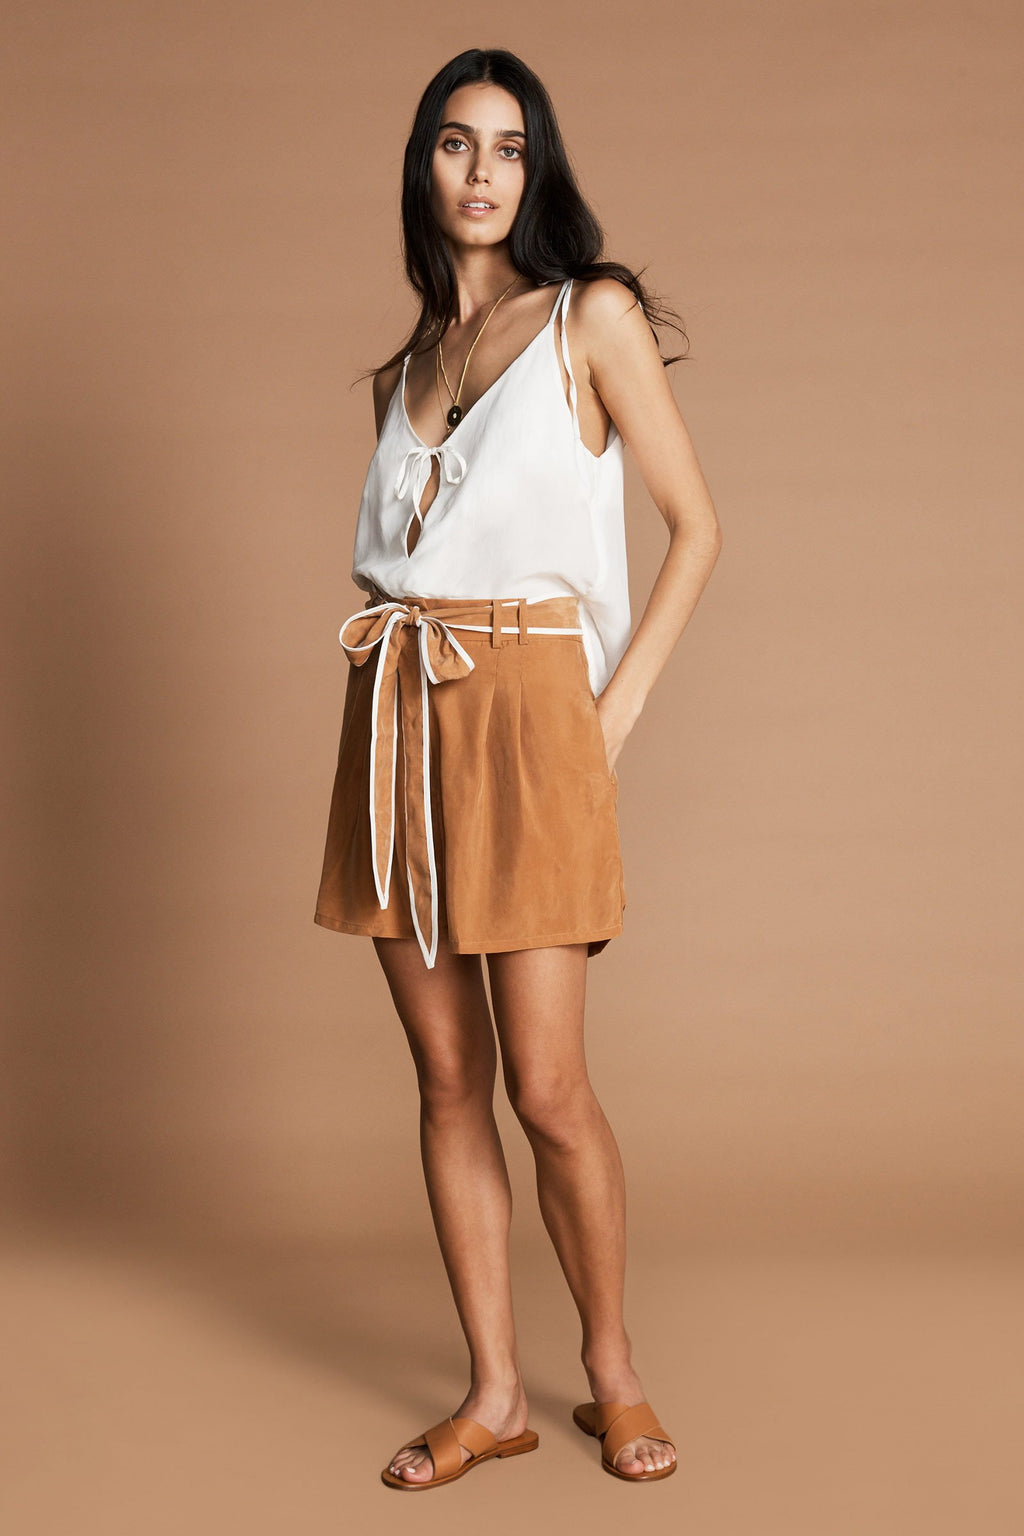 SANCIA - Oliviane Shorts online at PAYA boutique